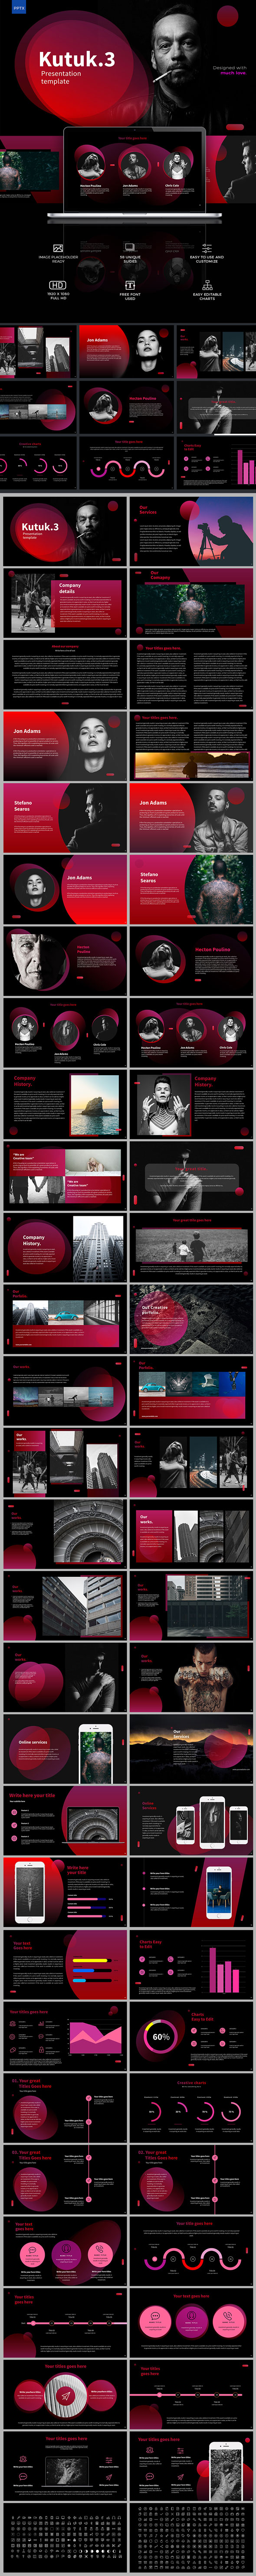 Kutuk-3 Powerpoint Template - PowerPoint Templates Presentation Templates